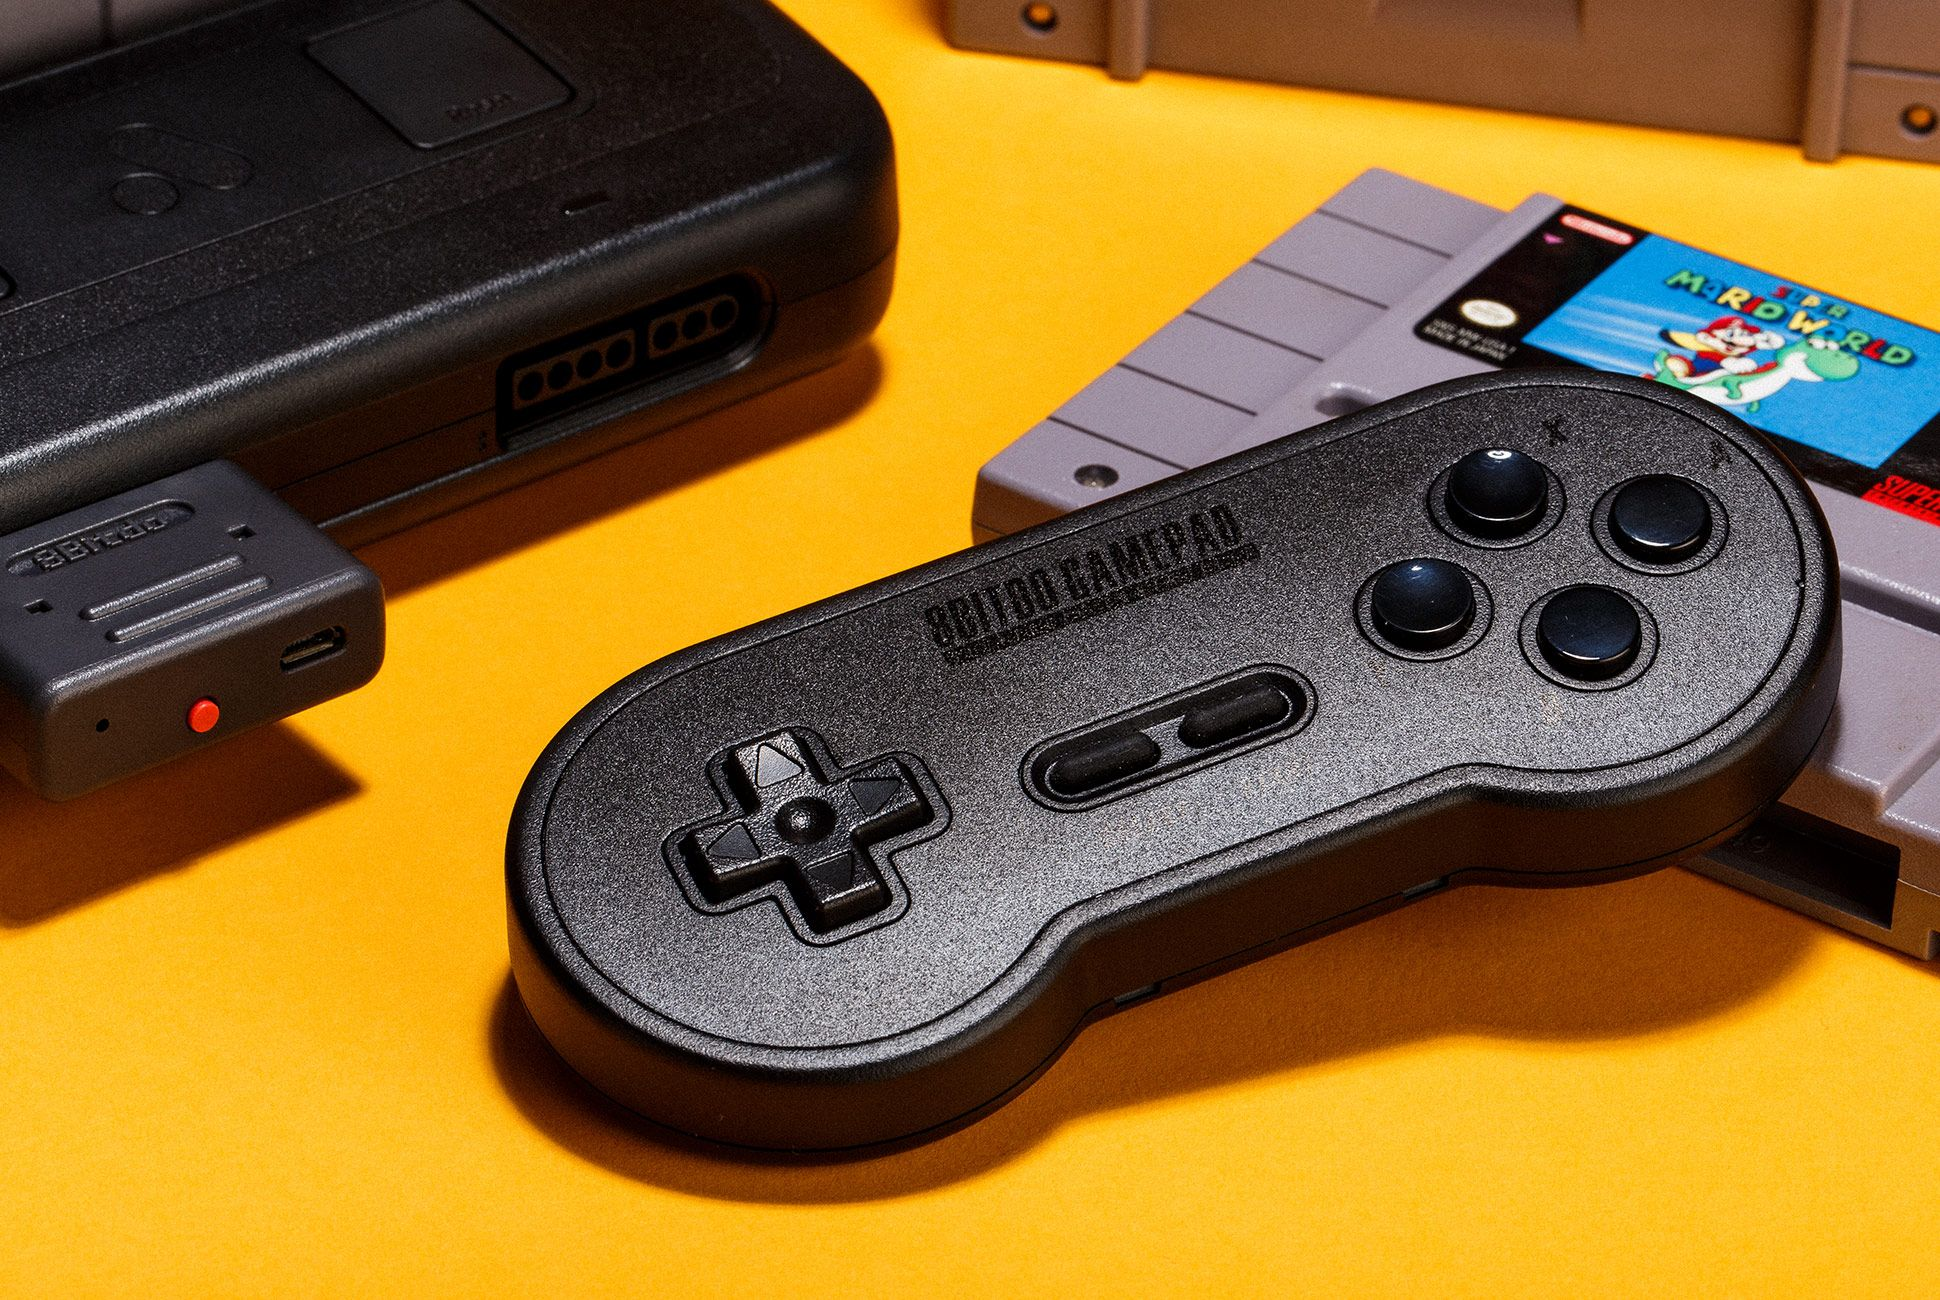 Analog-Super-NT-Console-Review-gear-patrol-3